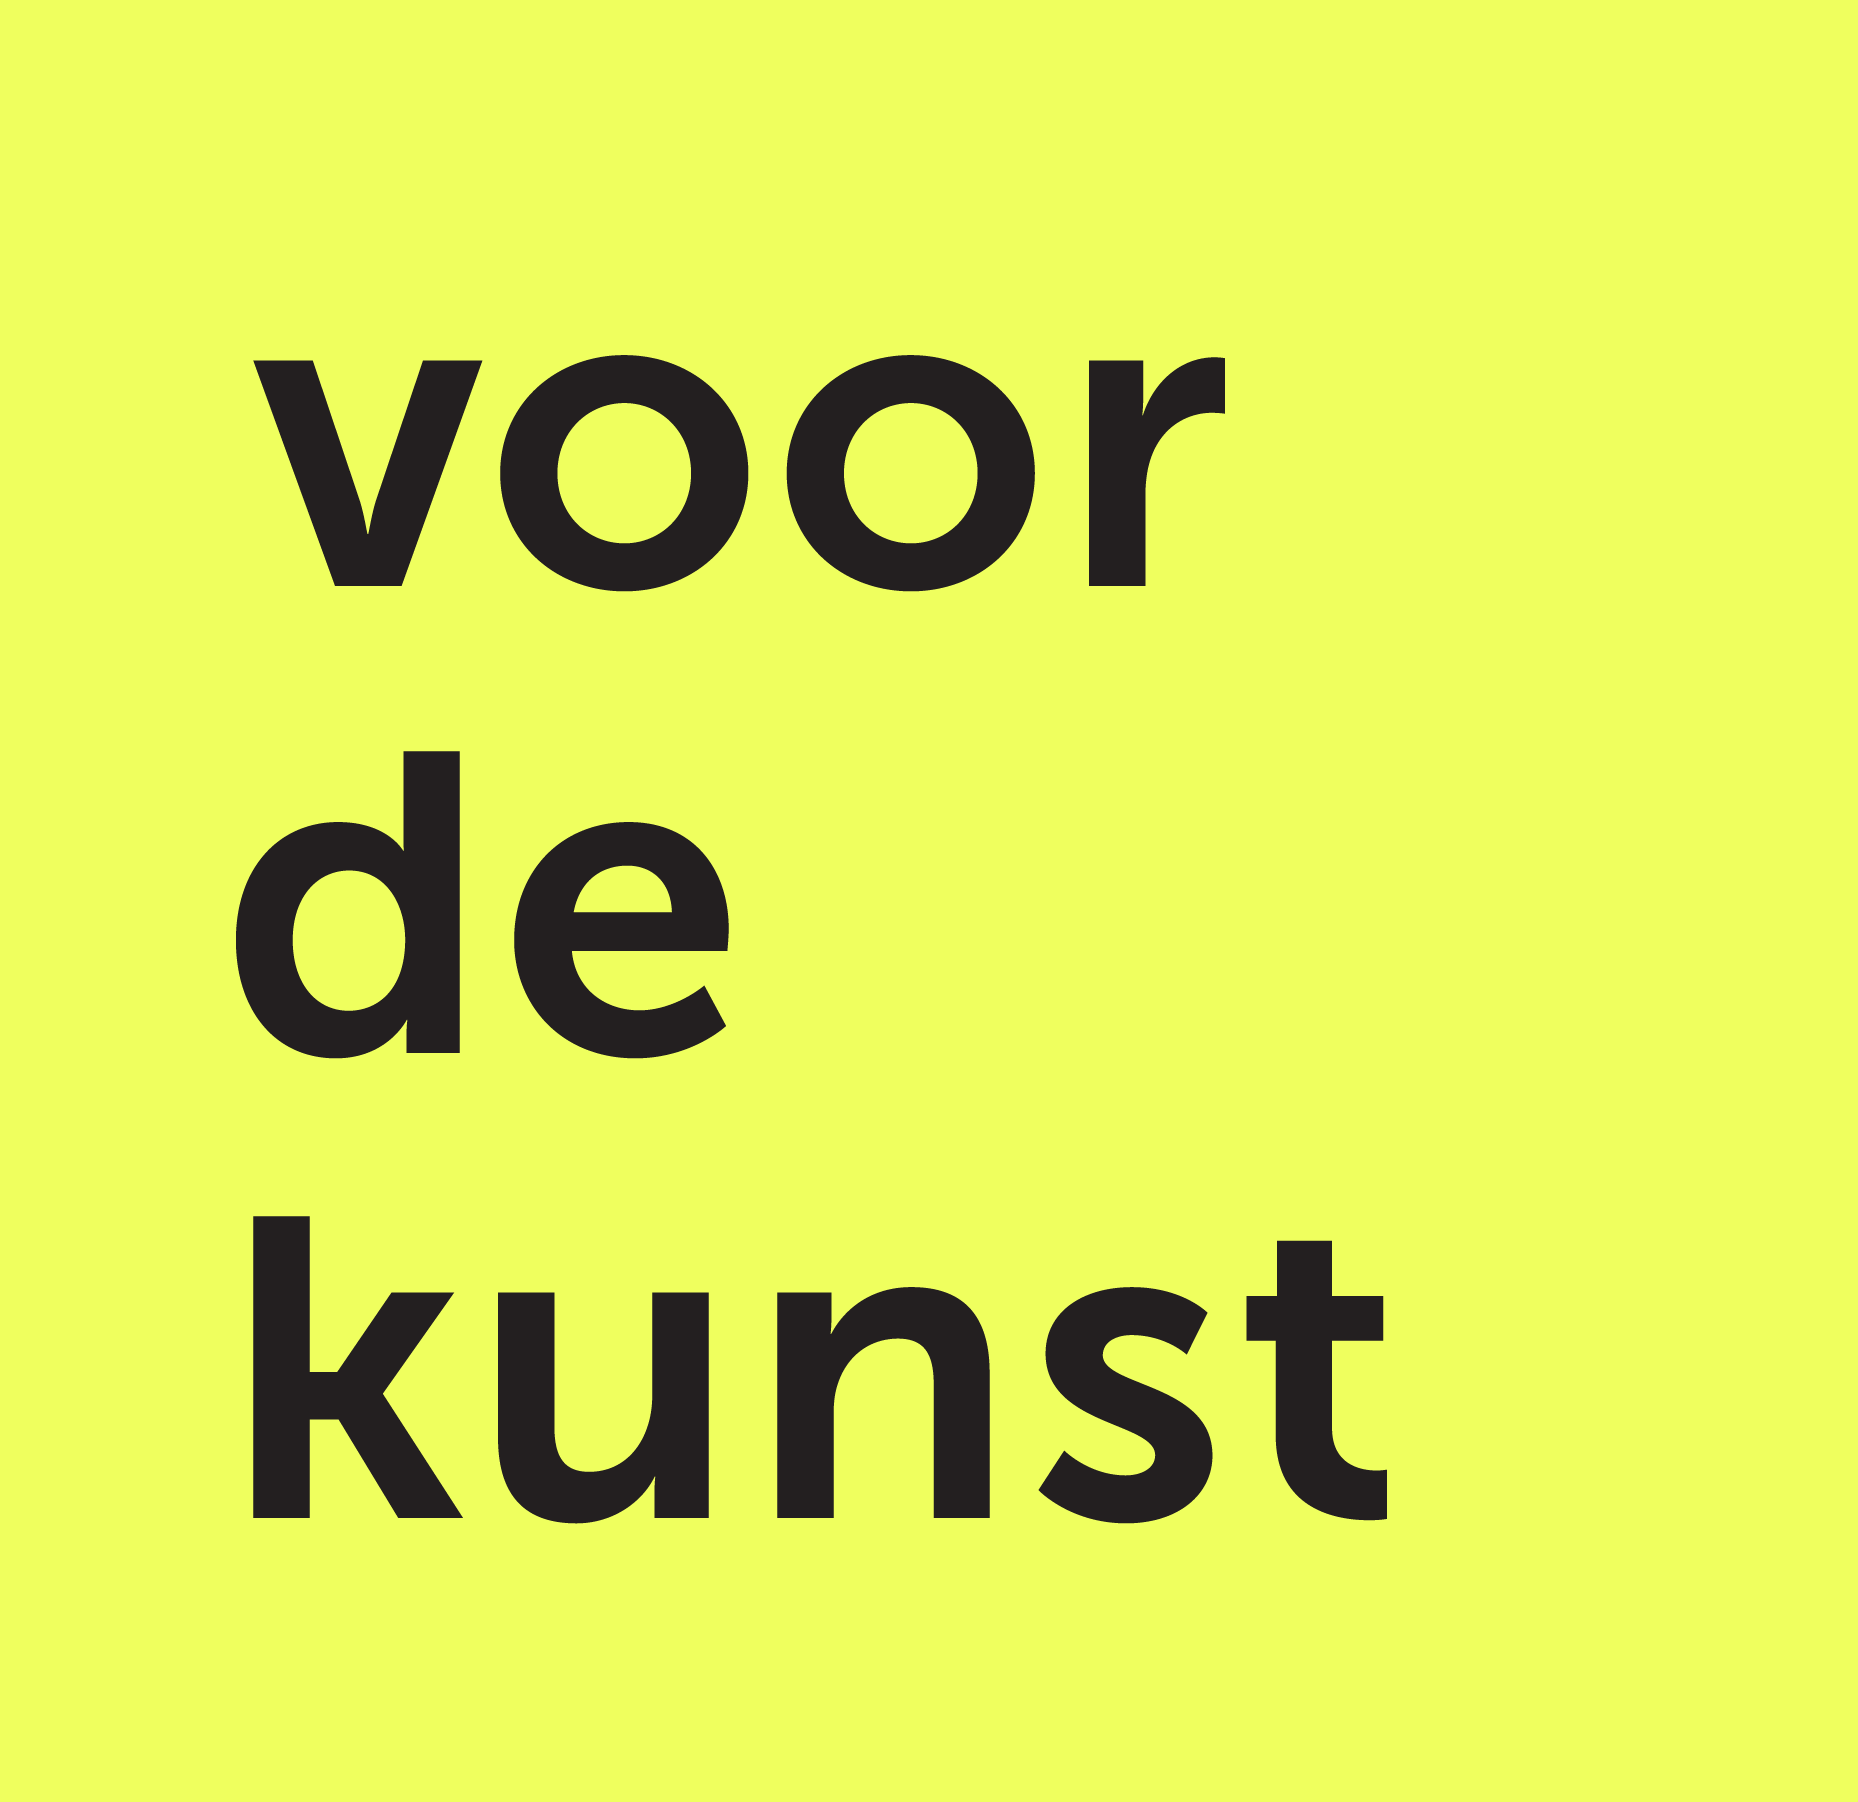 voordekunst_logo_square_yellow